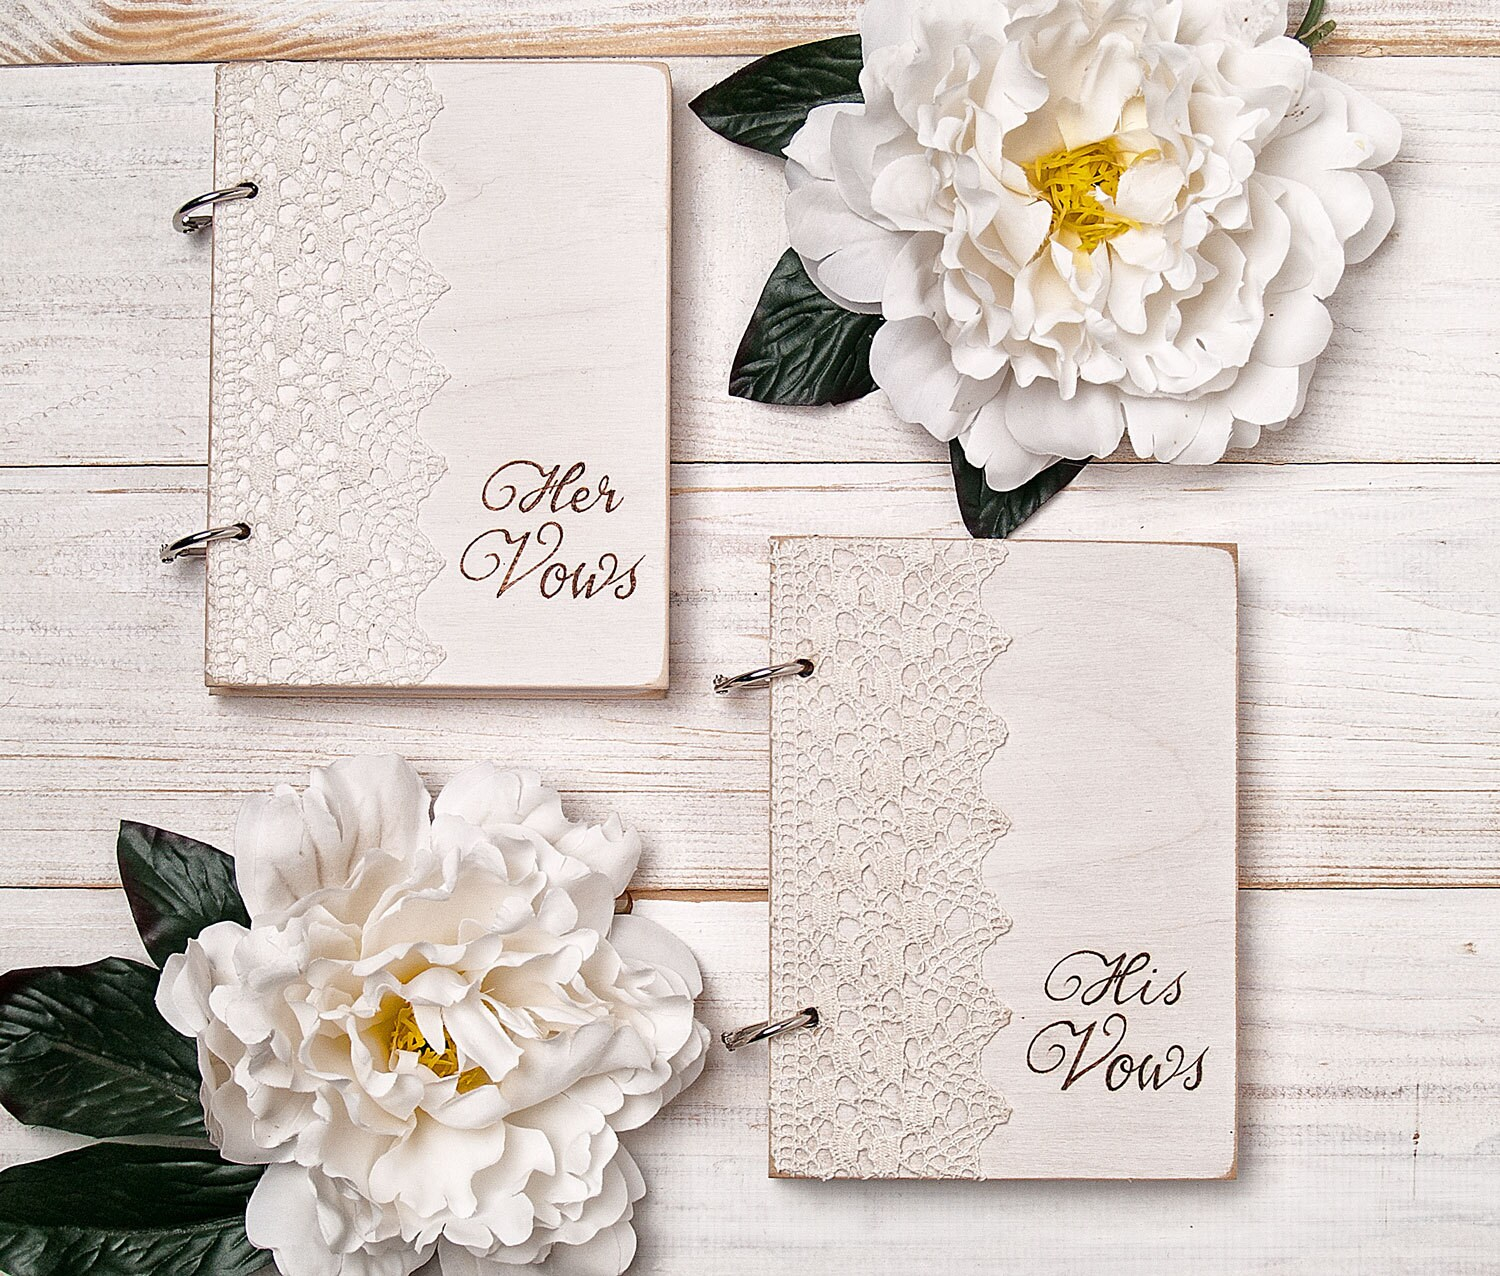 Wedding Vow Ideas For Groom: Bride And Groom Wedding Vow Books Wedding Vows Wedding Vow